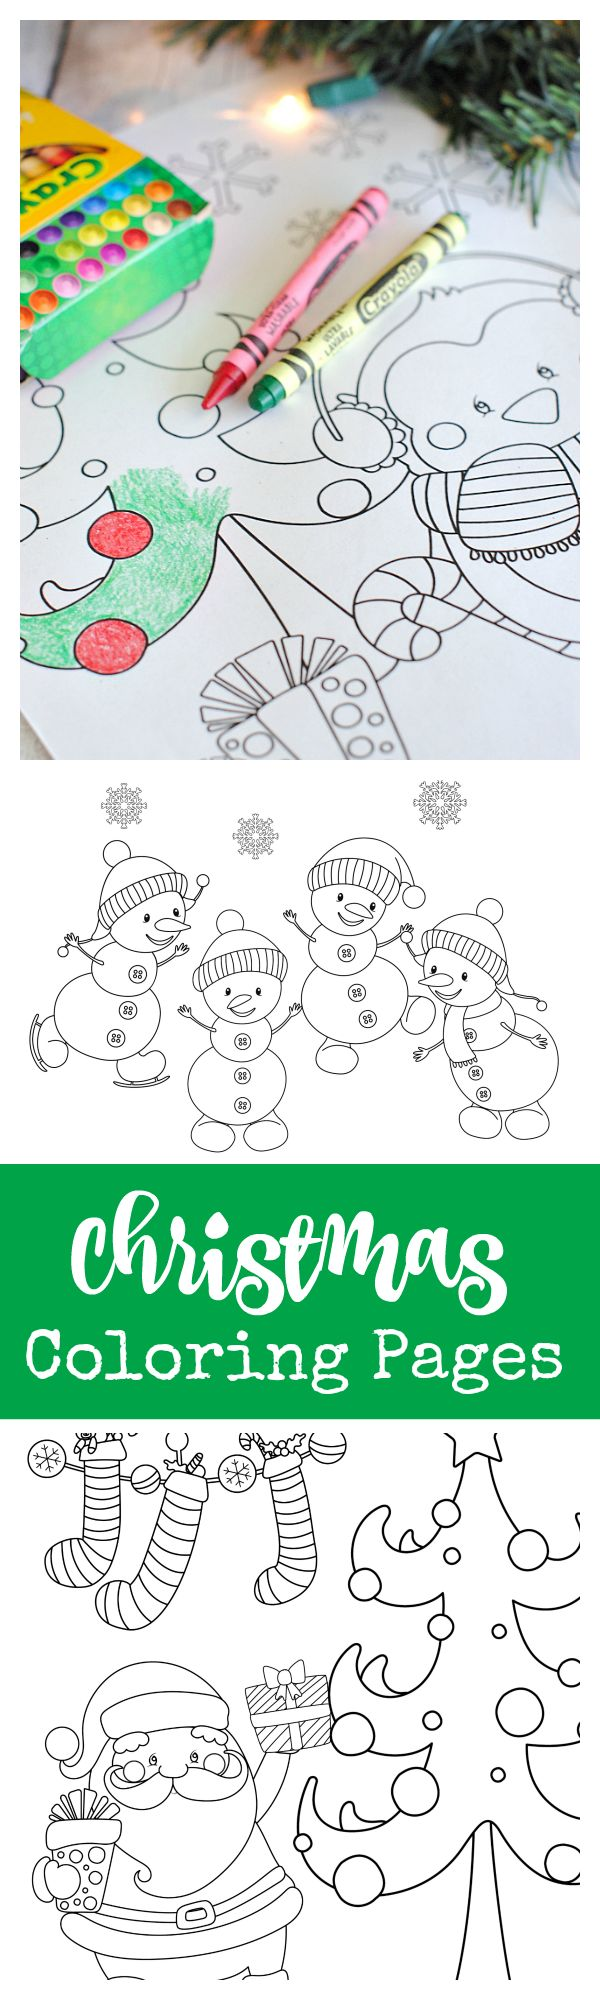 57 best Coloring Pages for Kids images on Pinterest | Coloring pages ...